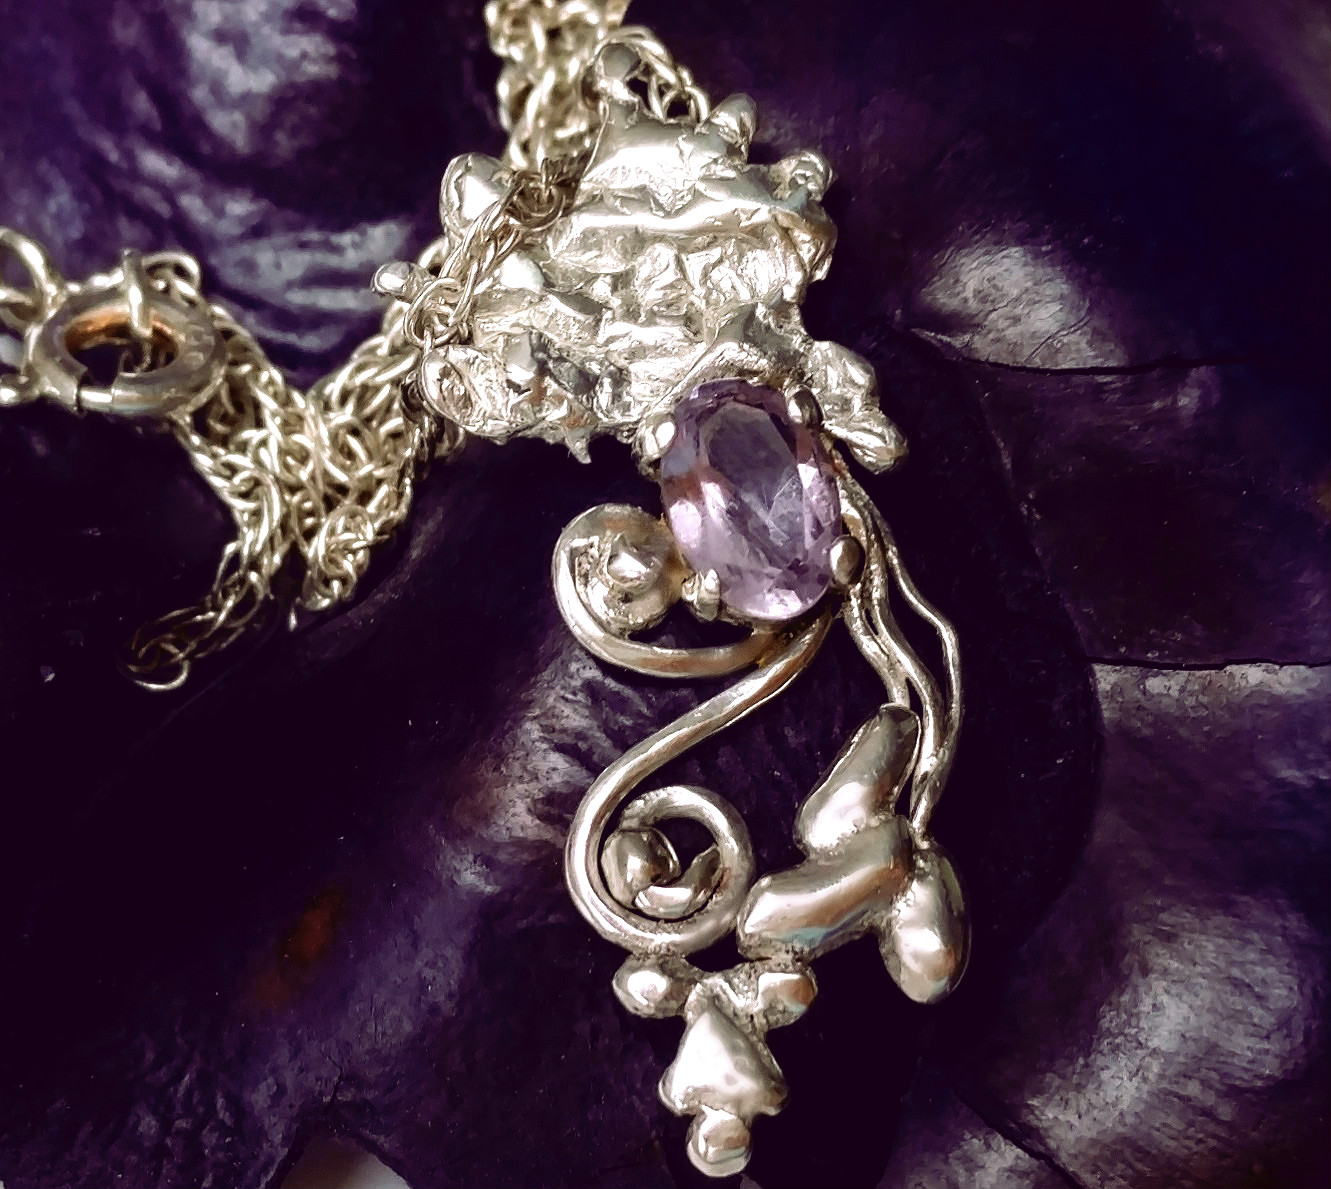 Amethyst charm necklace 925 silver